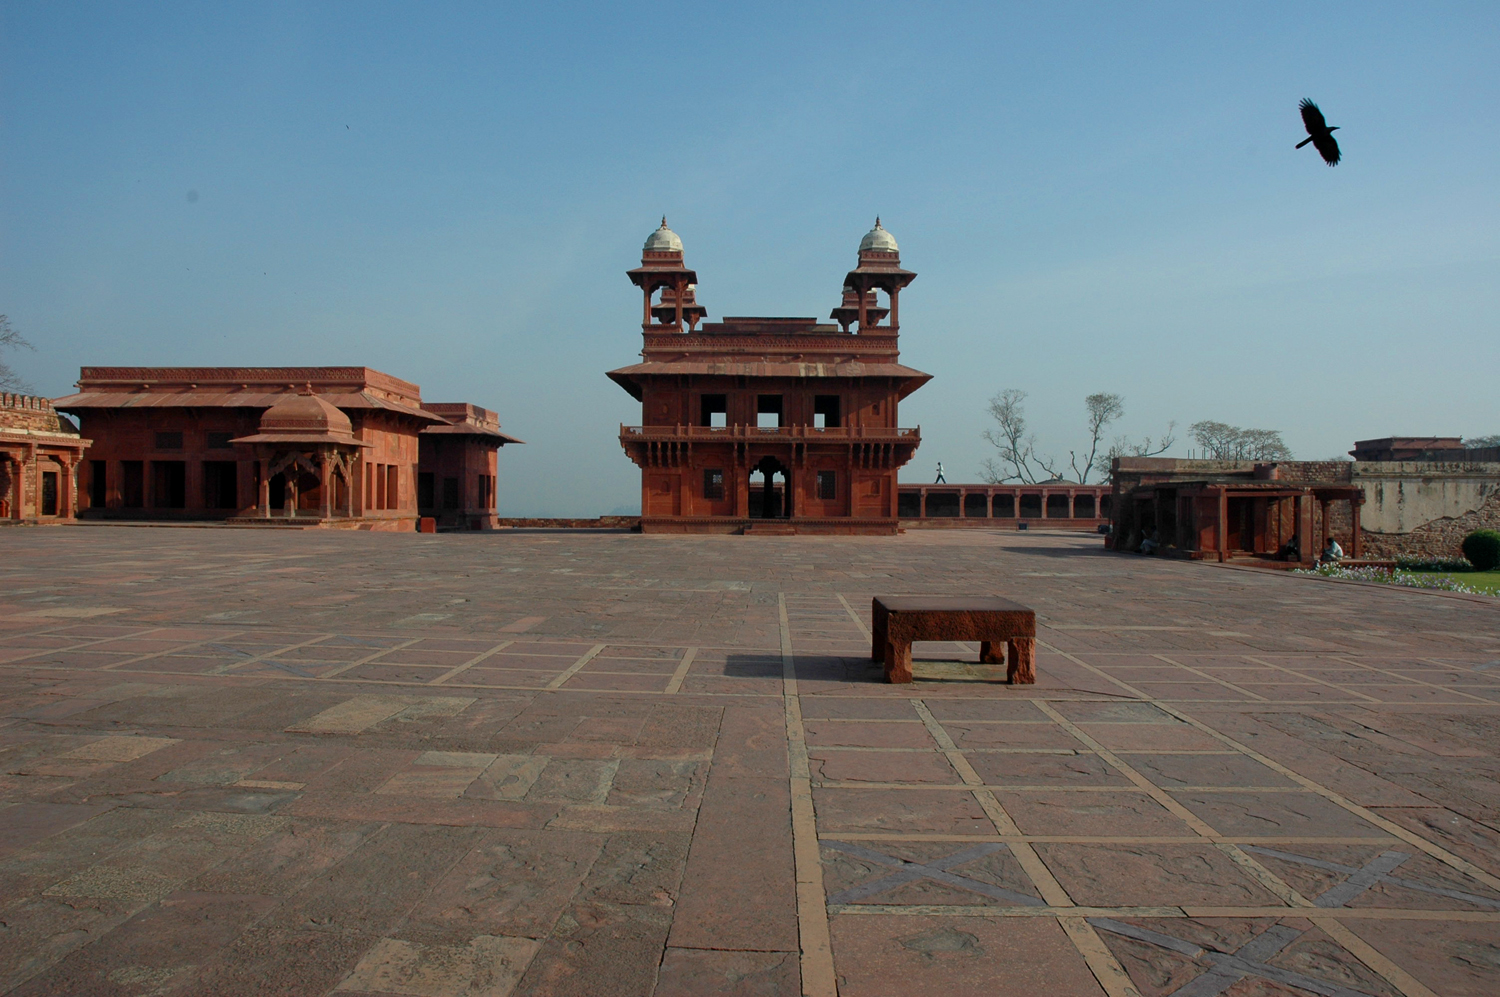 The celebrated chatri, Diwan-i-Khass, was set within a hard-surfaced maidan at Fatehpur Sikri, Uttar Pradesh, 18 March 2007, photograph by Gordon Brent Ingram